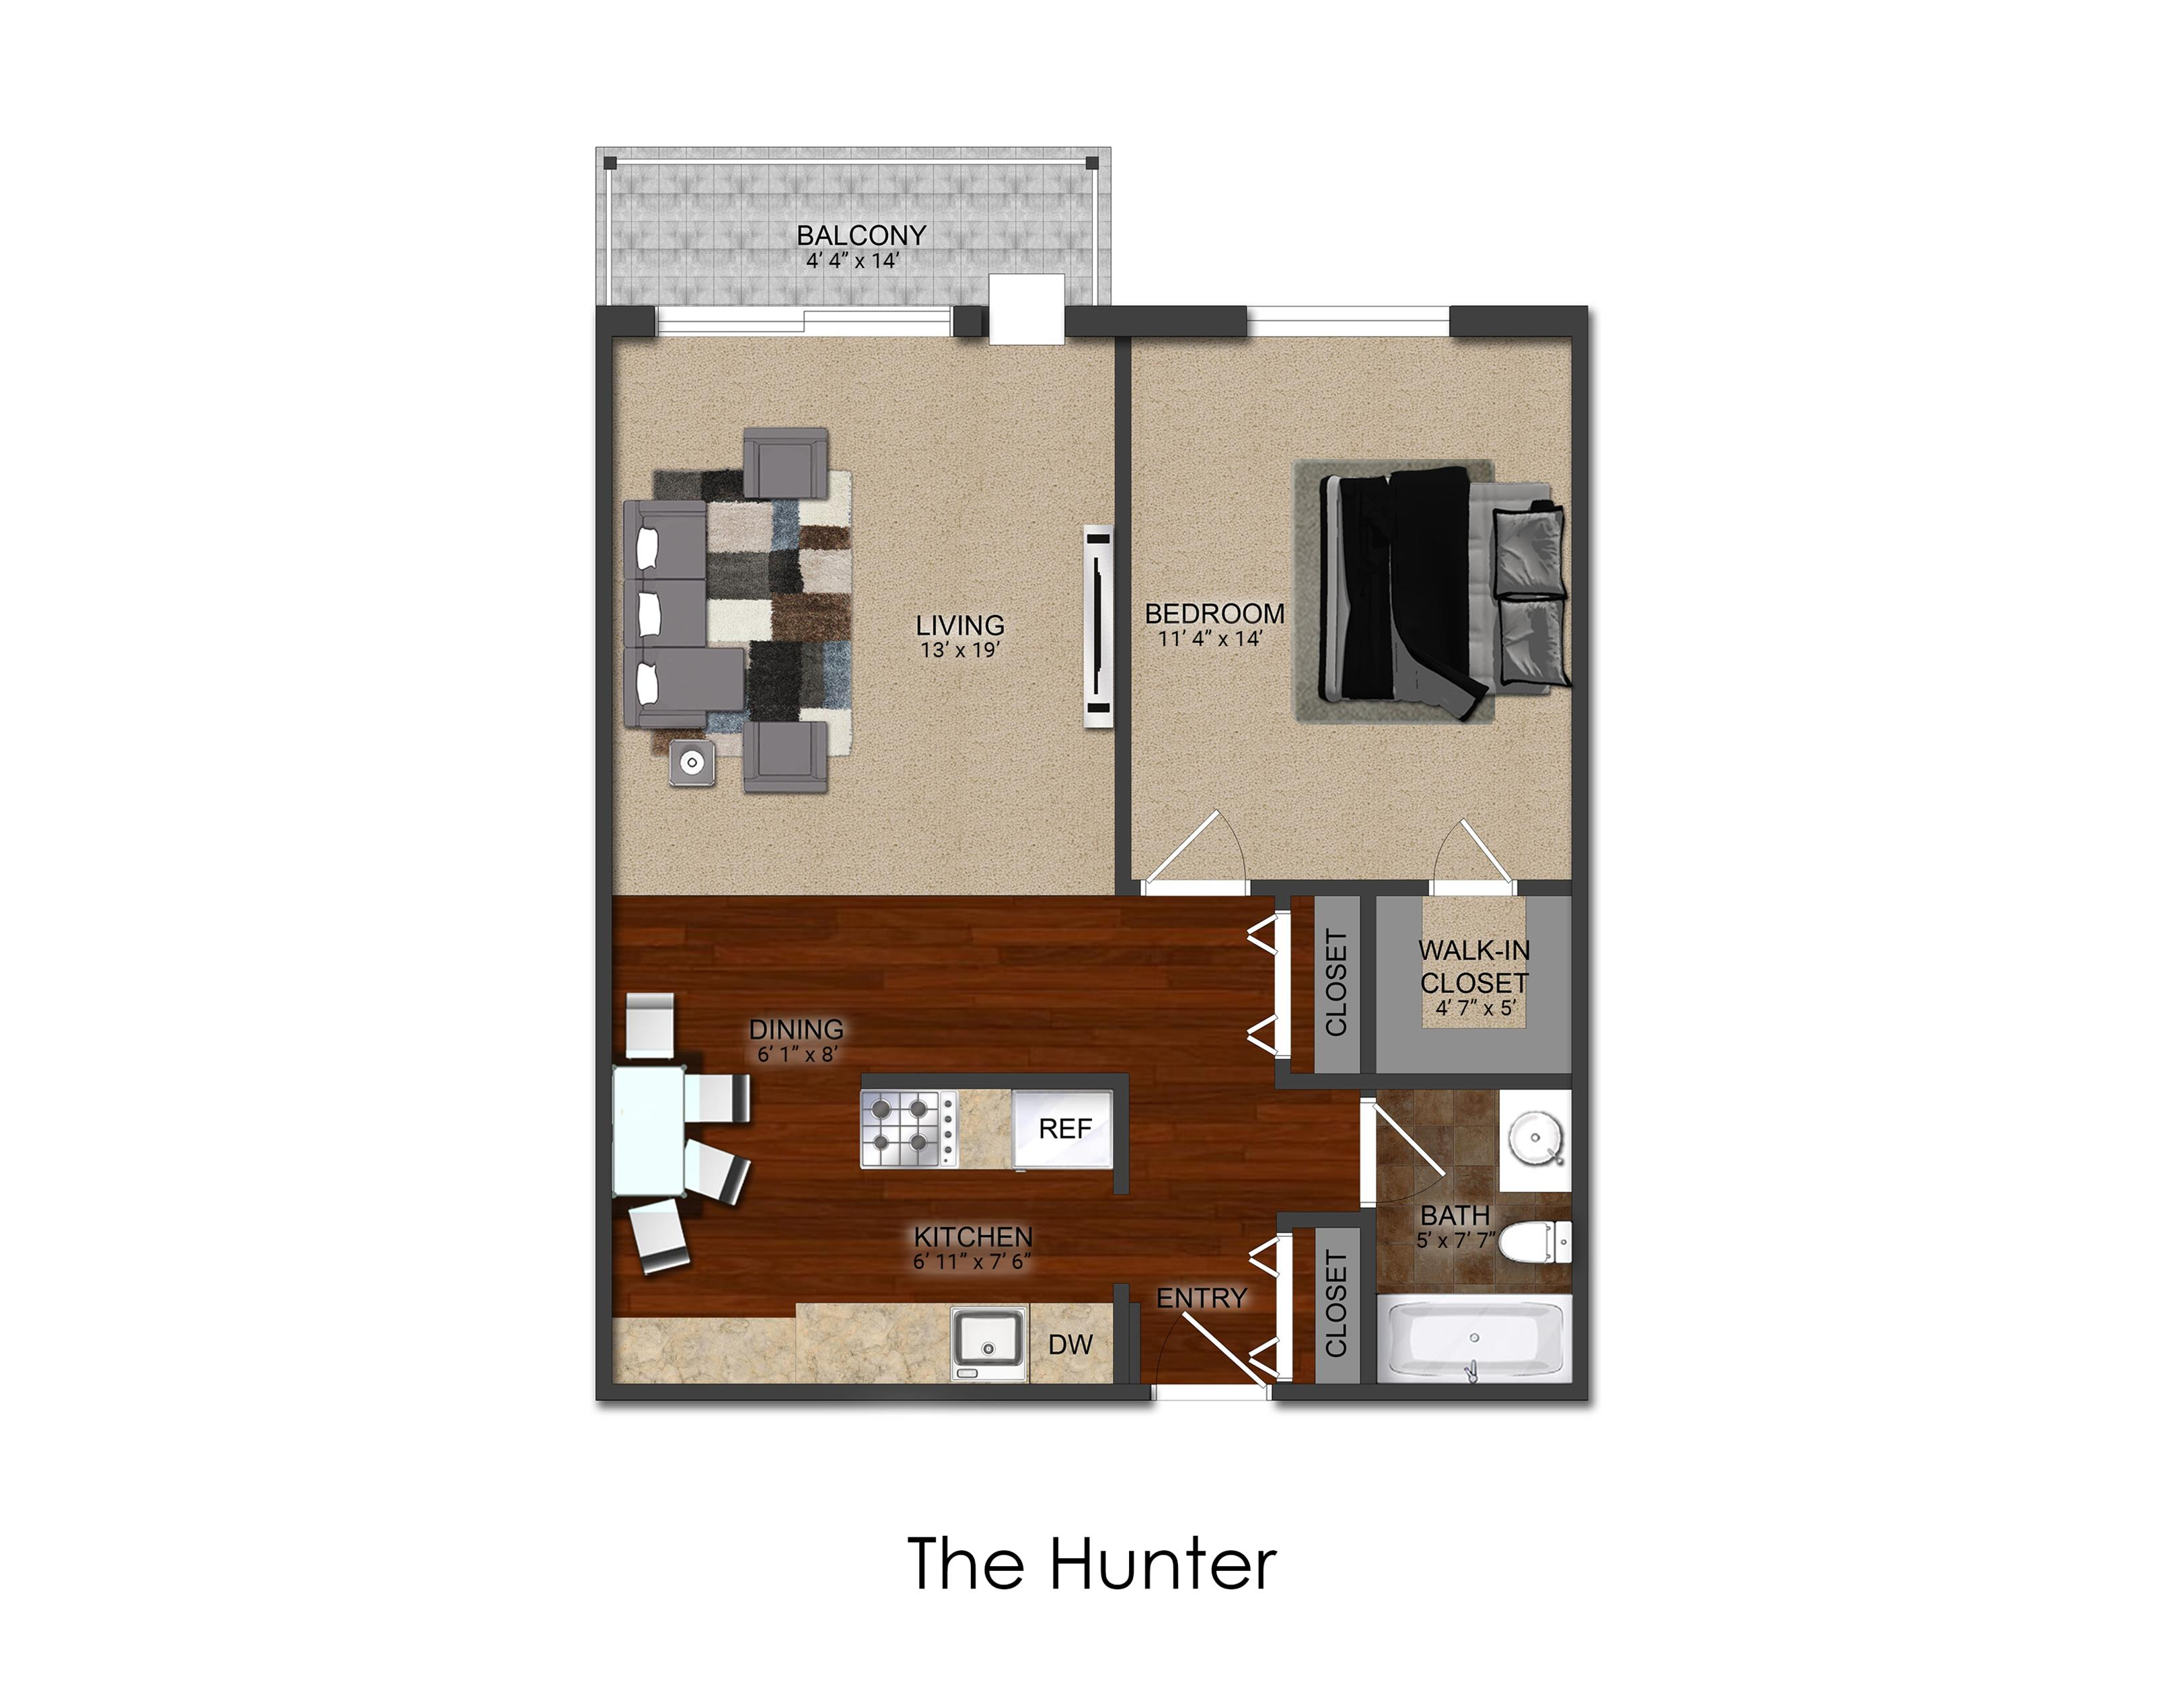 Image of 3030 Sumter Ave N, # 14